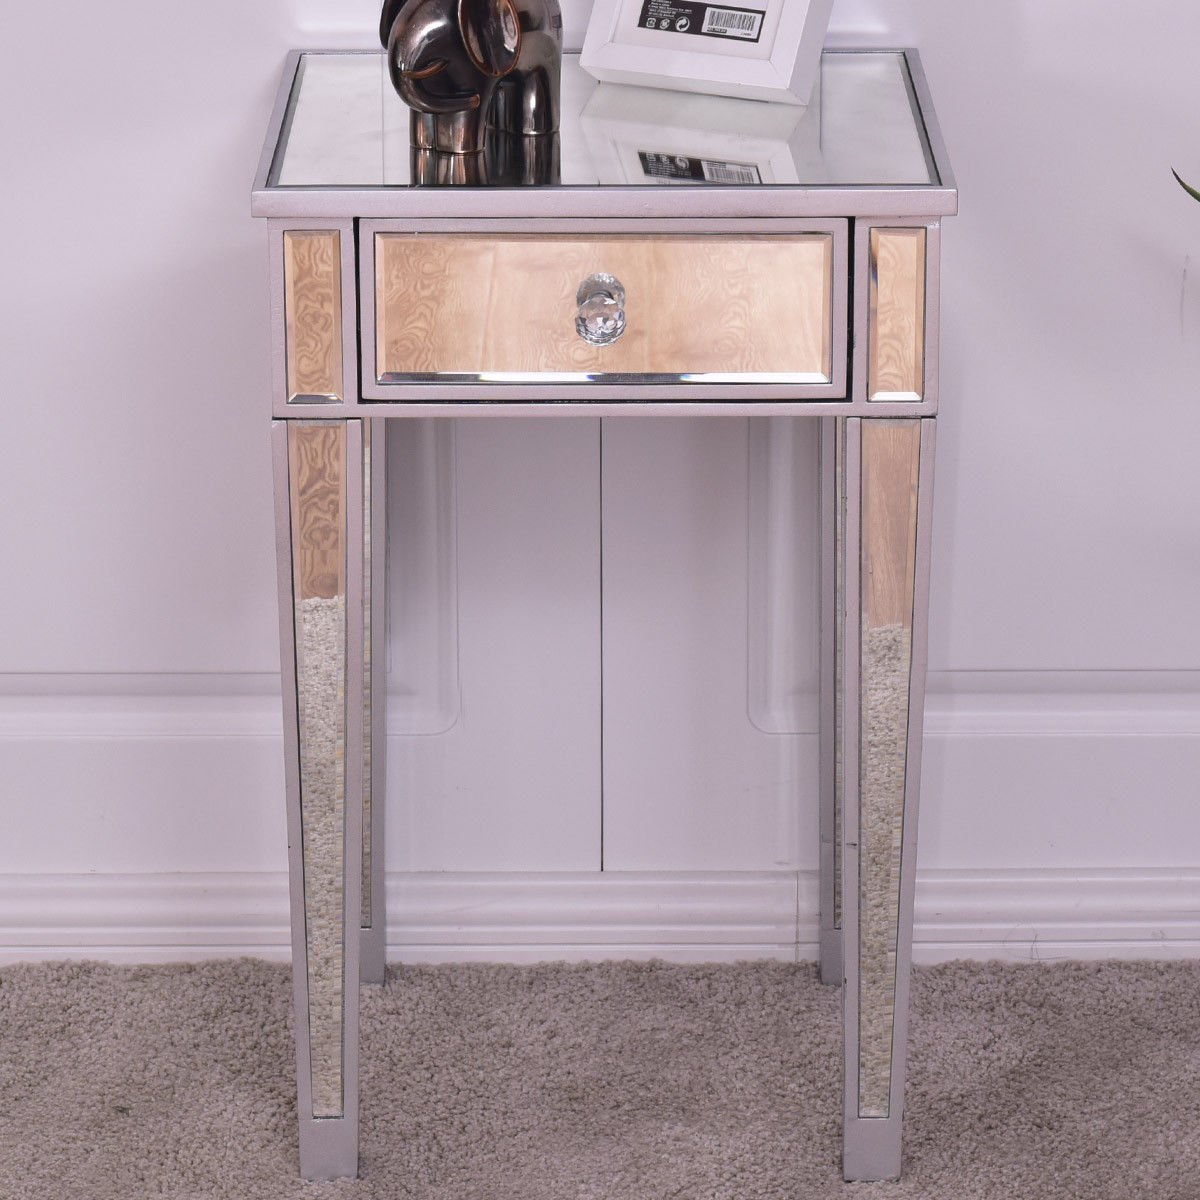 way pcs mirrored accent table nightstand end storage cabinet drawer inch console telesco legs pink chandelier lamp ikea coffee and side tables baxter furniture pottery barn